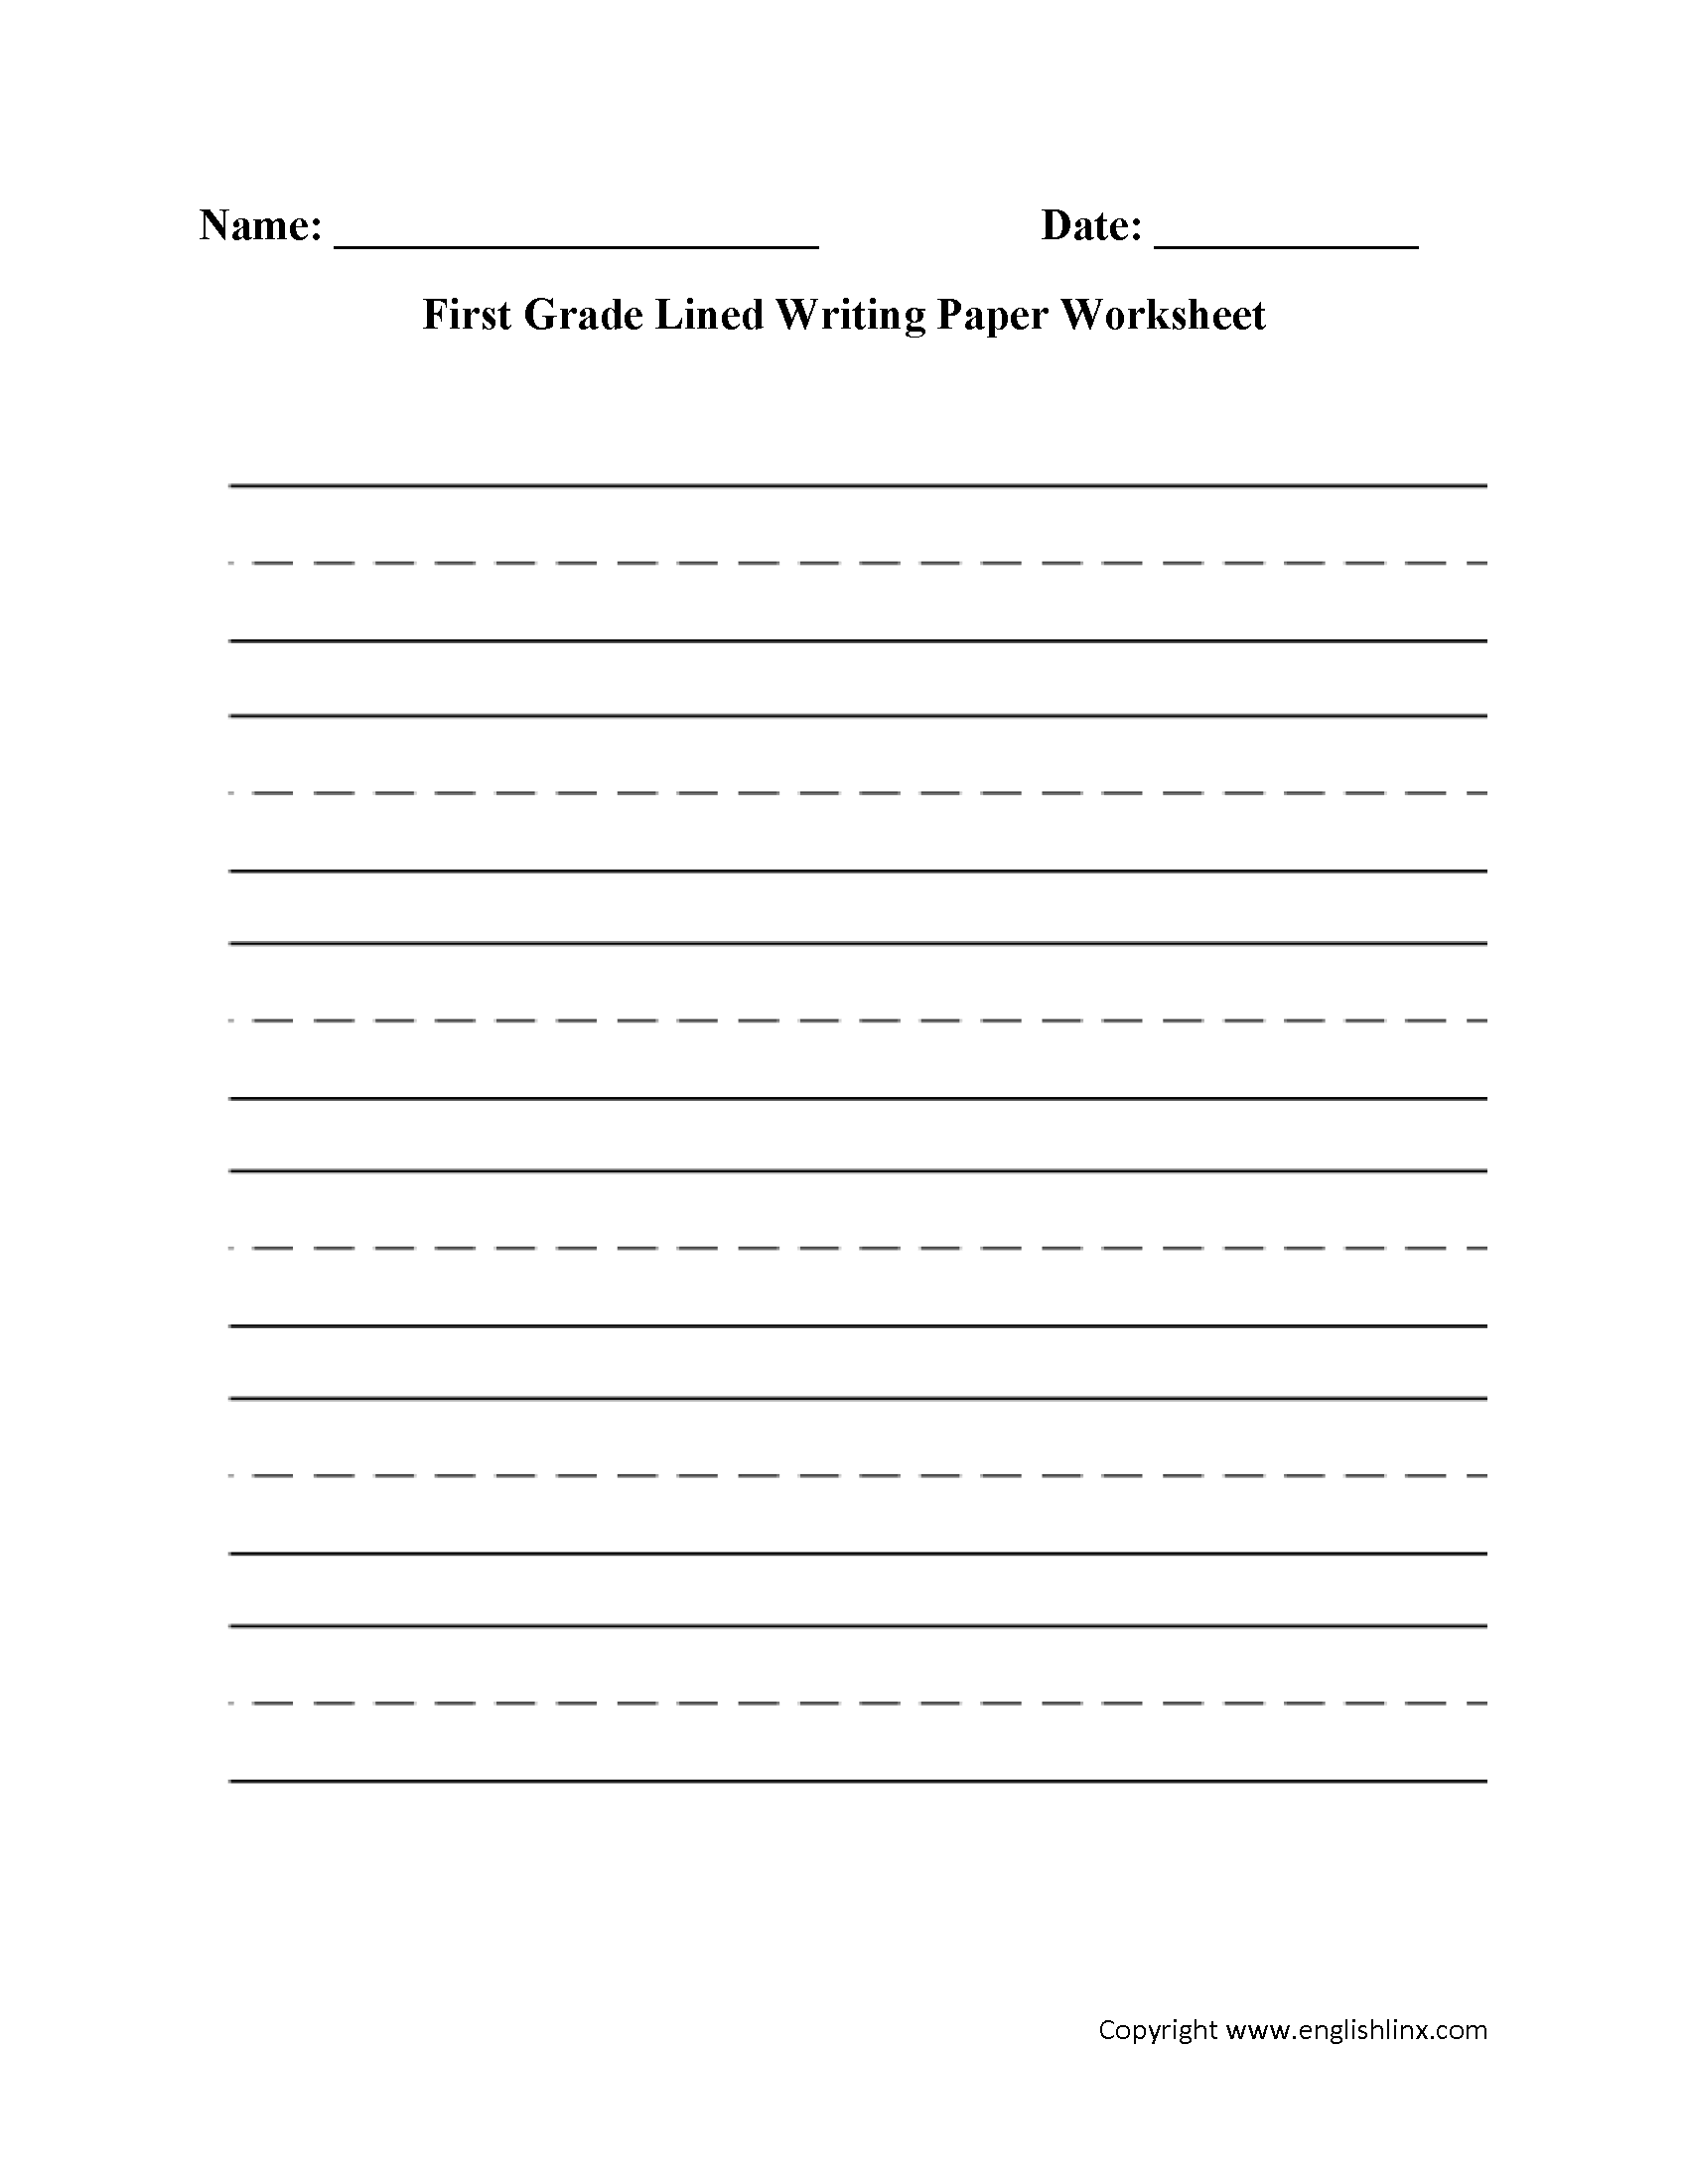 free first grade writing paper This page contains links to free math worksheets for handwriting paper problems  5 handwriting paper printables basic handing writing pages in  1st grade math.